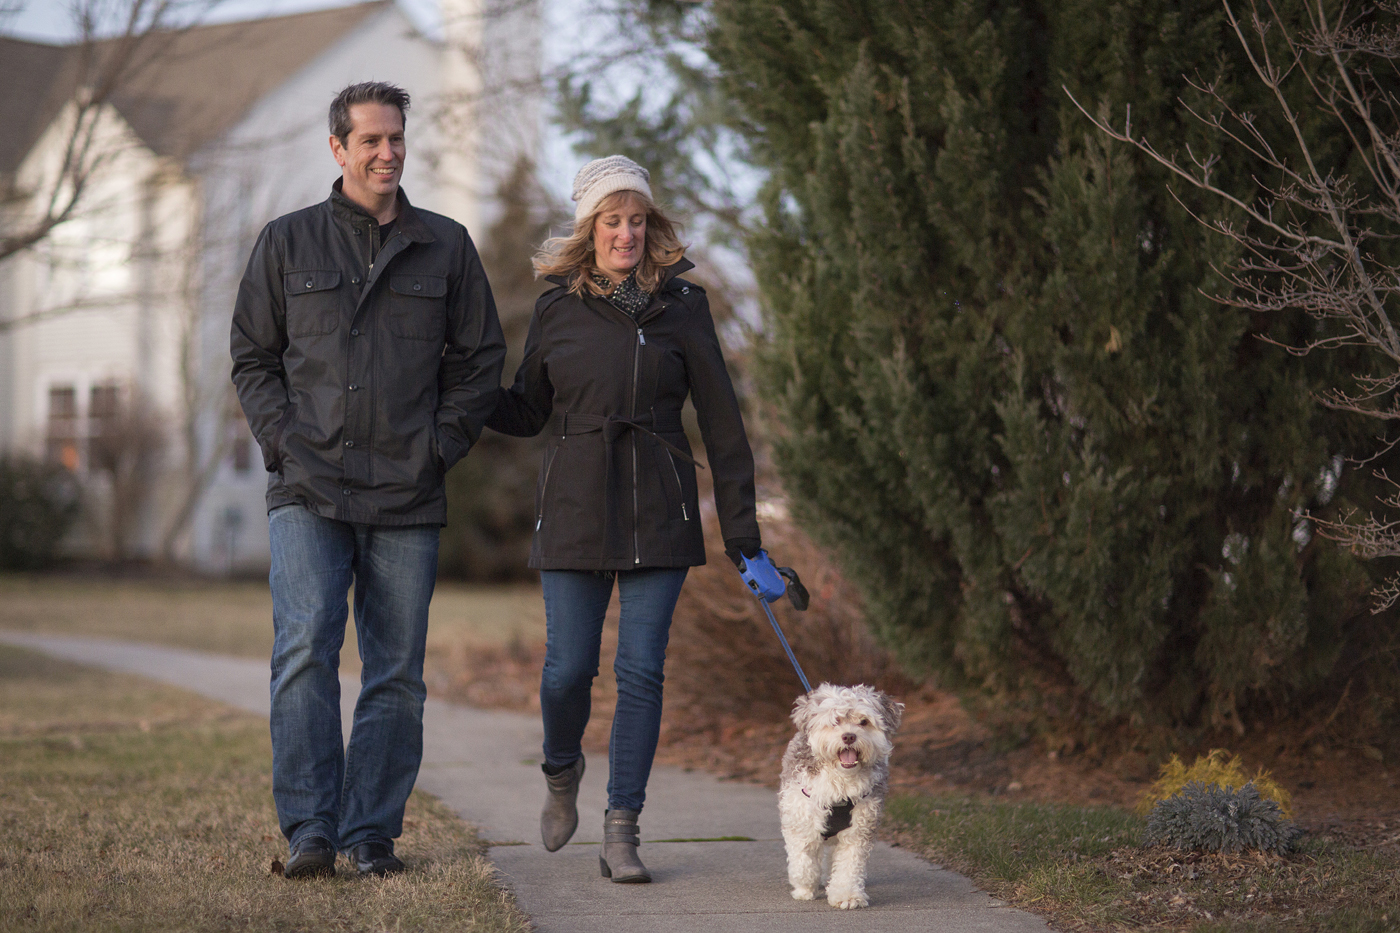 Faith and her husband walk outside with their dog.